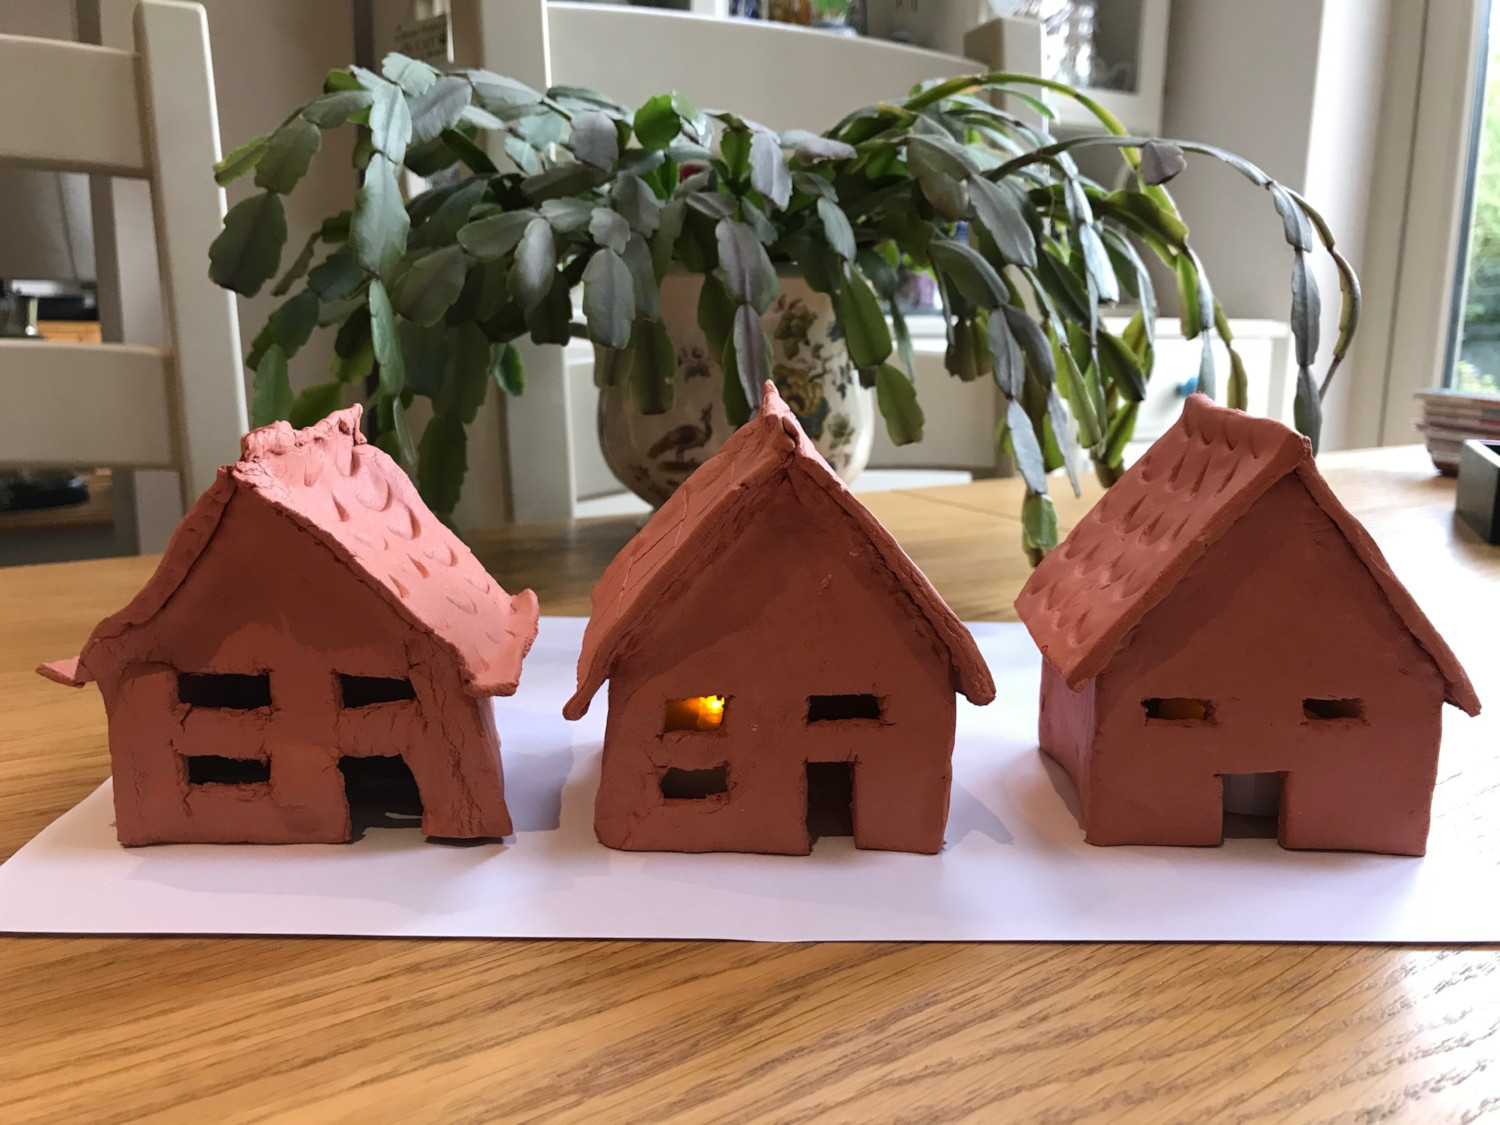 Clay houses made by our dear Janette in one of Coffee & Chat Zoom meetings with people living with dementia and their families